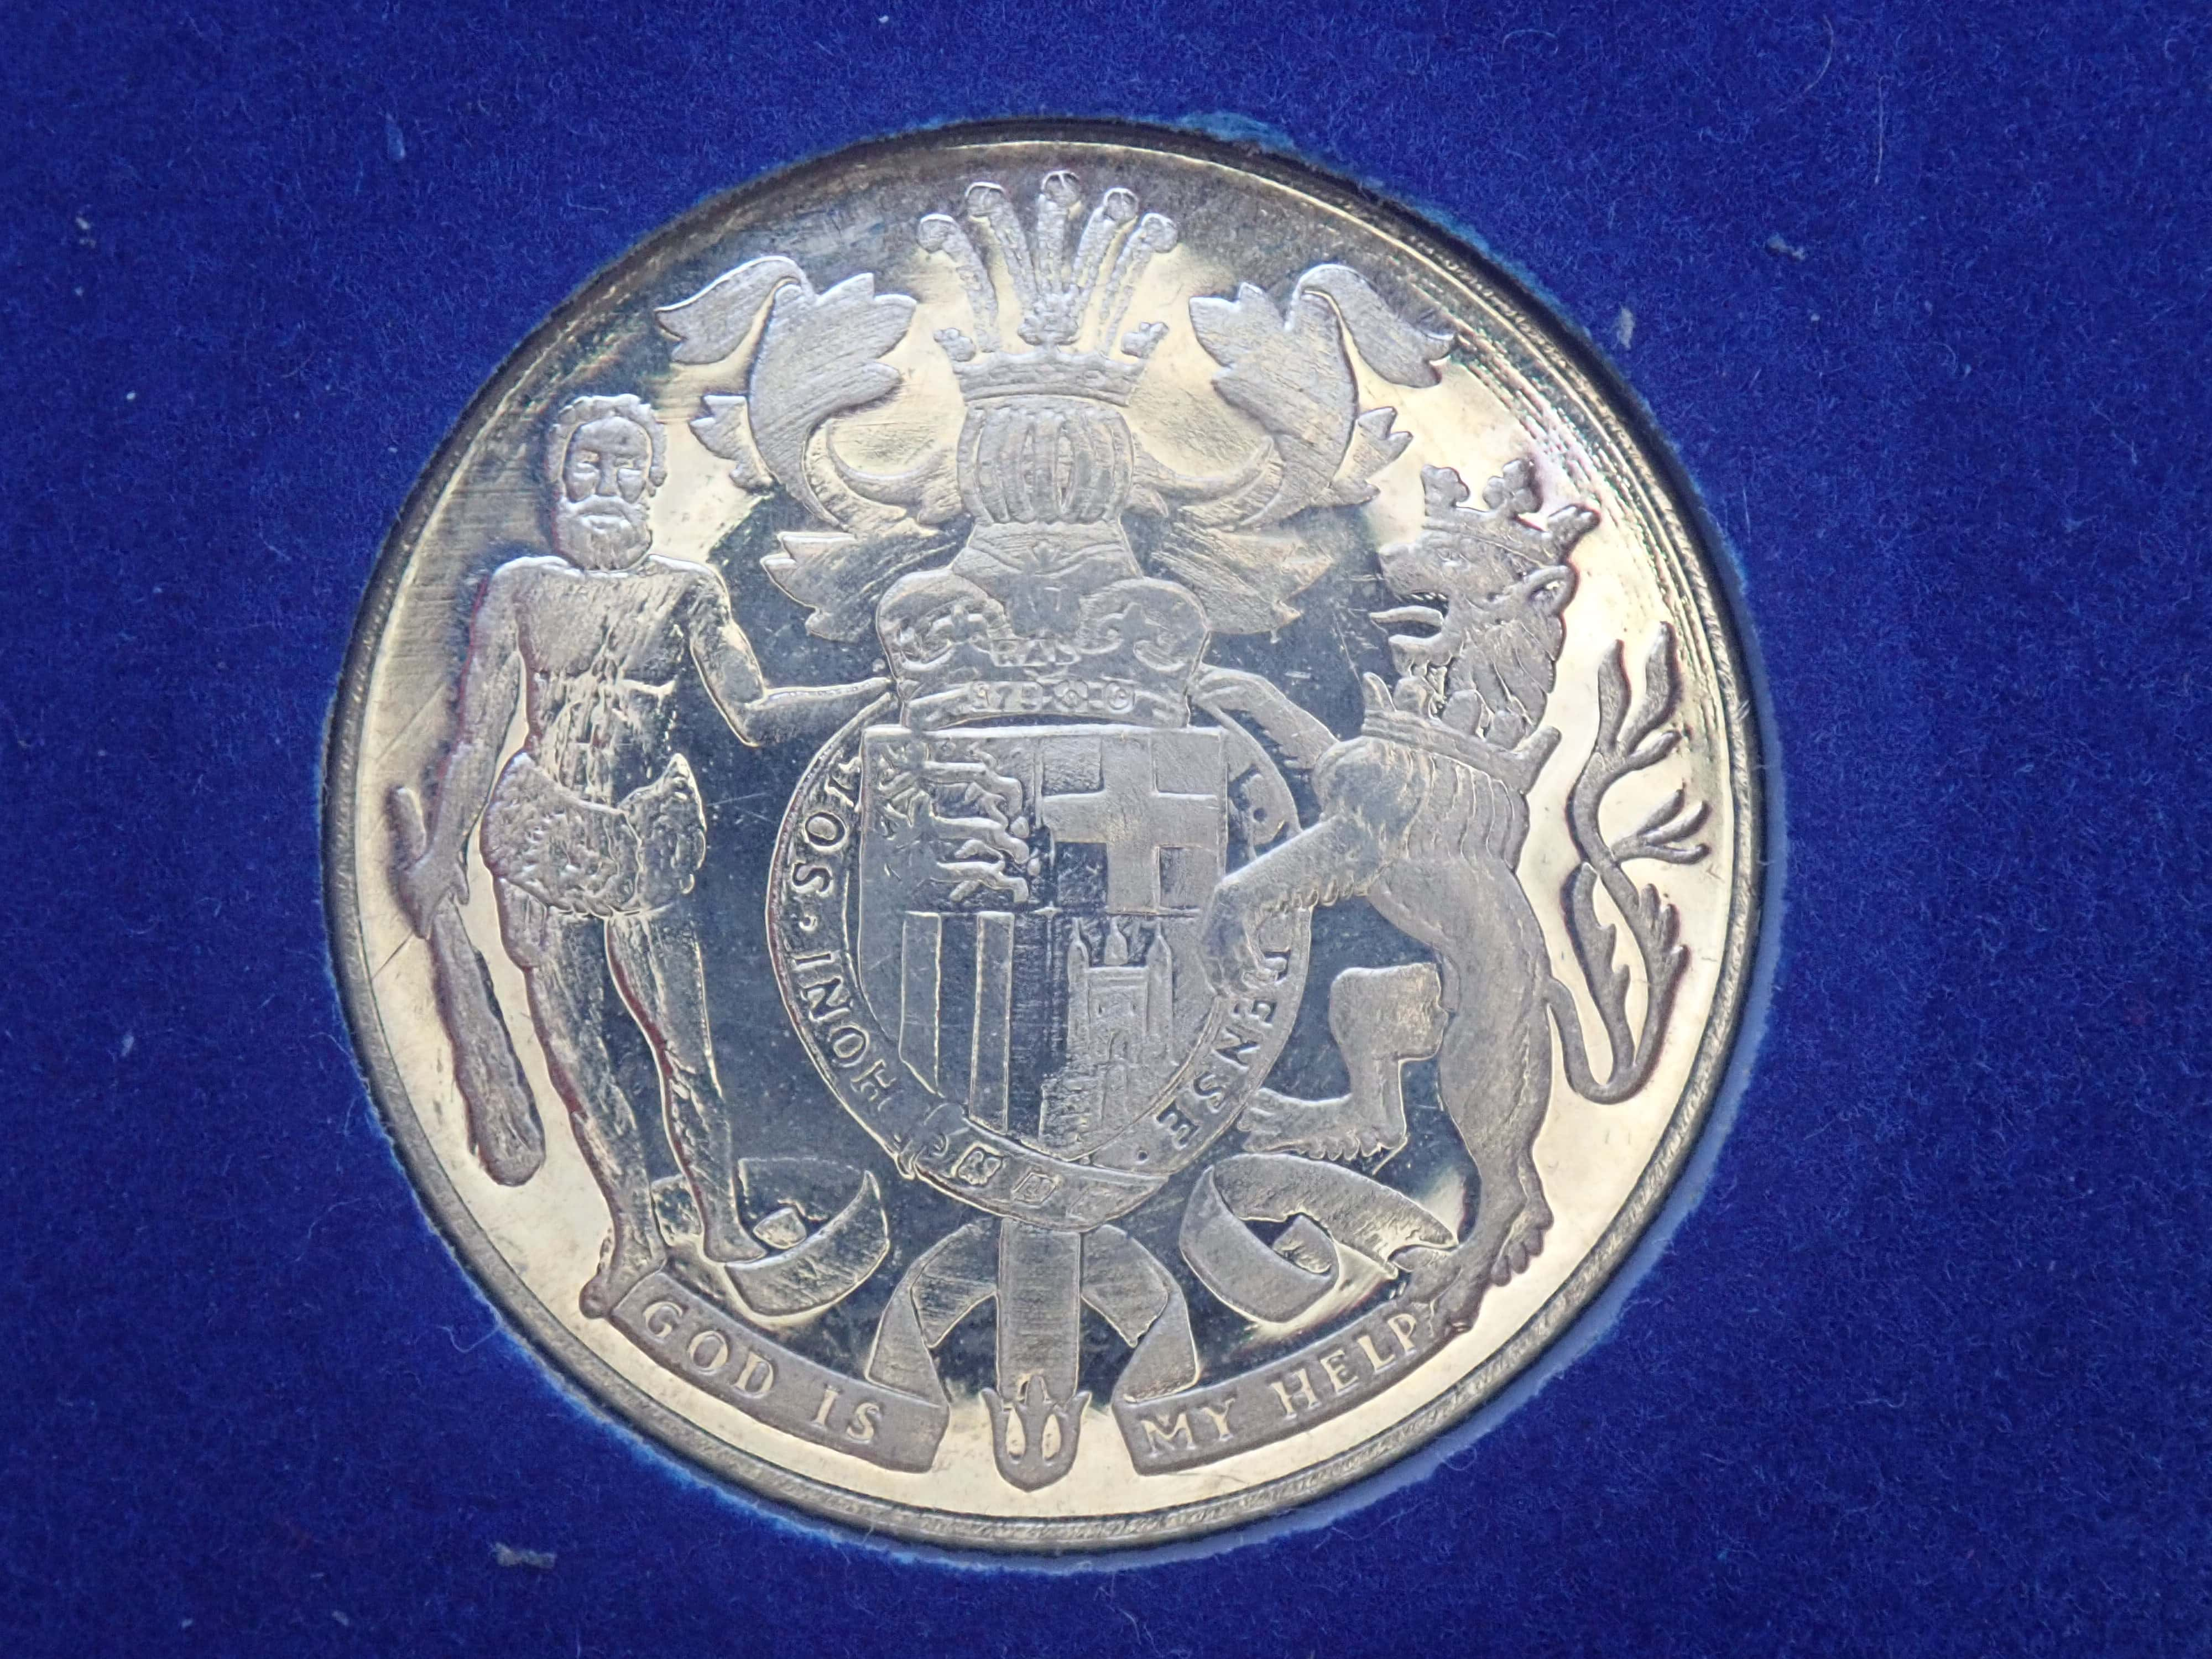 AZZ00806 - Gold 9ct Silver Jubilee Commemorative Medal 2.5gms, Prince Philip Box & Cert. Number 3213